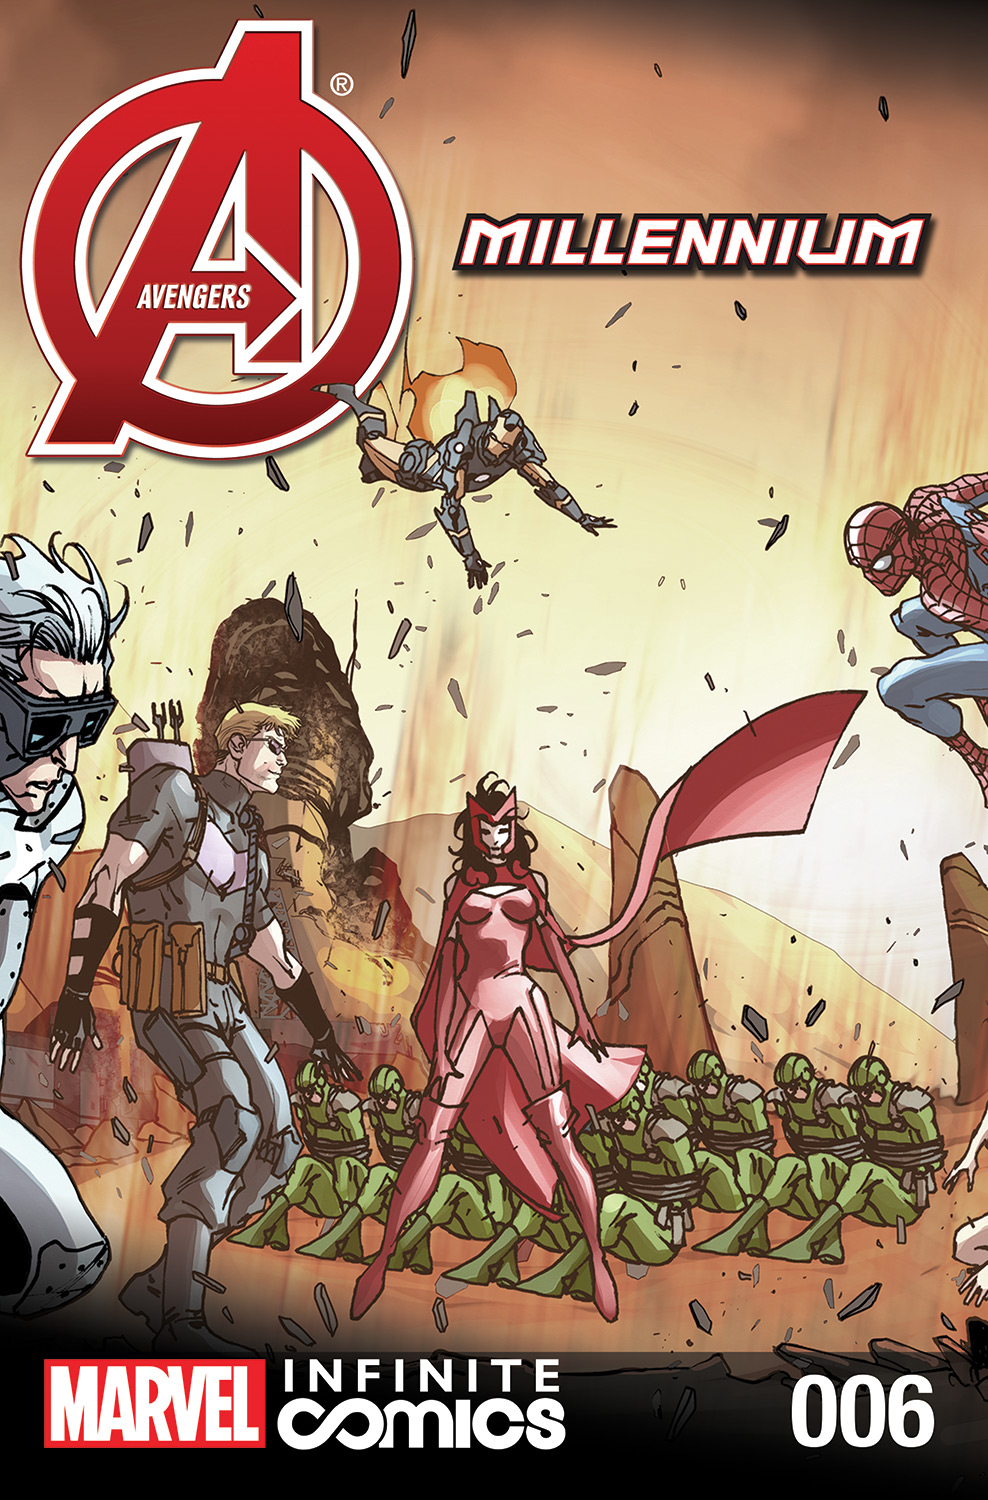 Avengers: Millennium Infinite Comic Vol 1 6